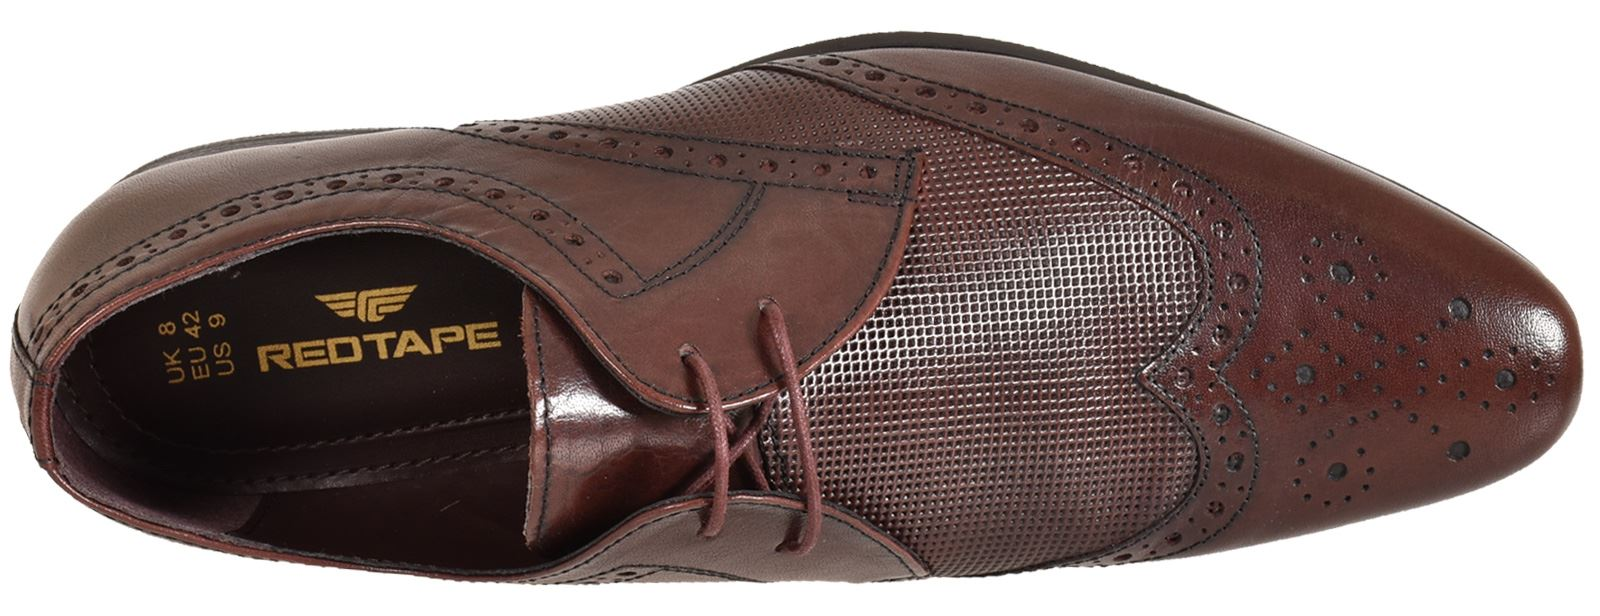 Mens-UK-Style-Leather-Lining-Formal-Office-Wedding-Smart-Work-Brogue-Shoes thumbnail 124